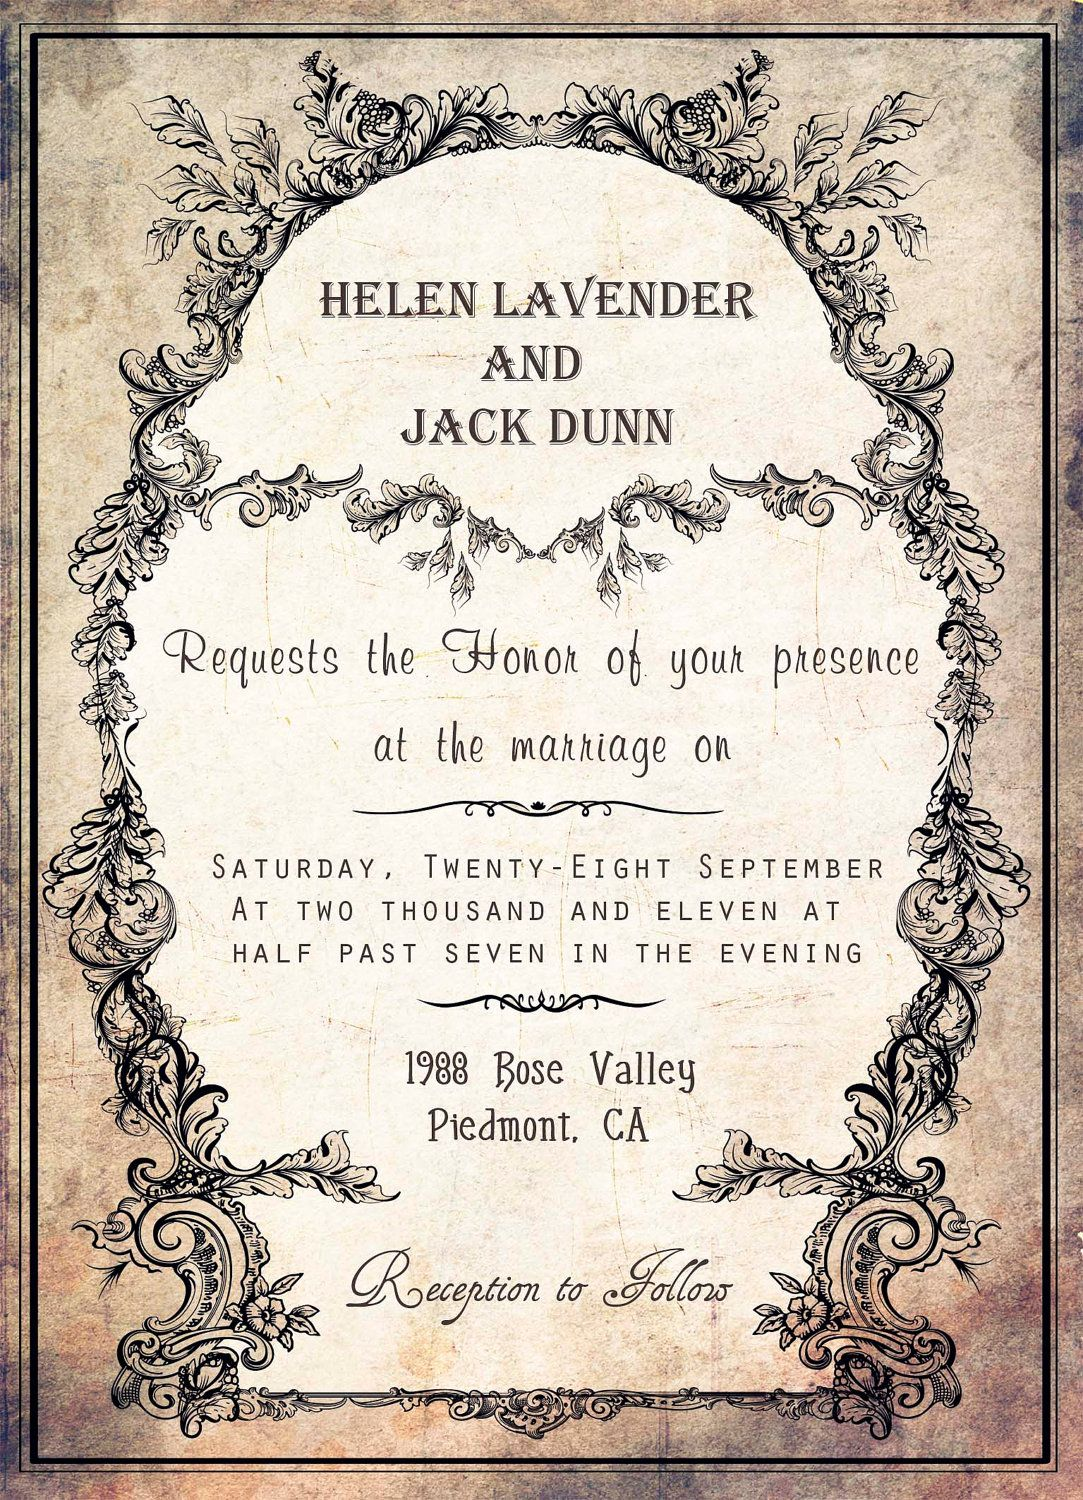 Invitation Wording Christian | Vintage Wedding Invitation Templates  Free Invitation Design Templates